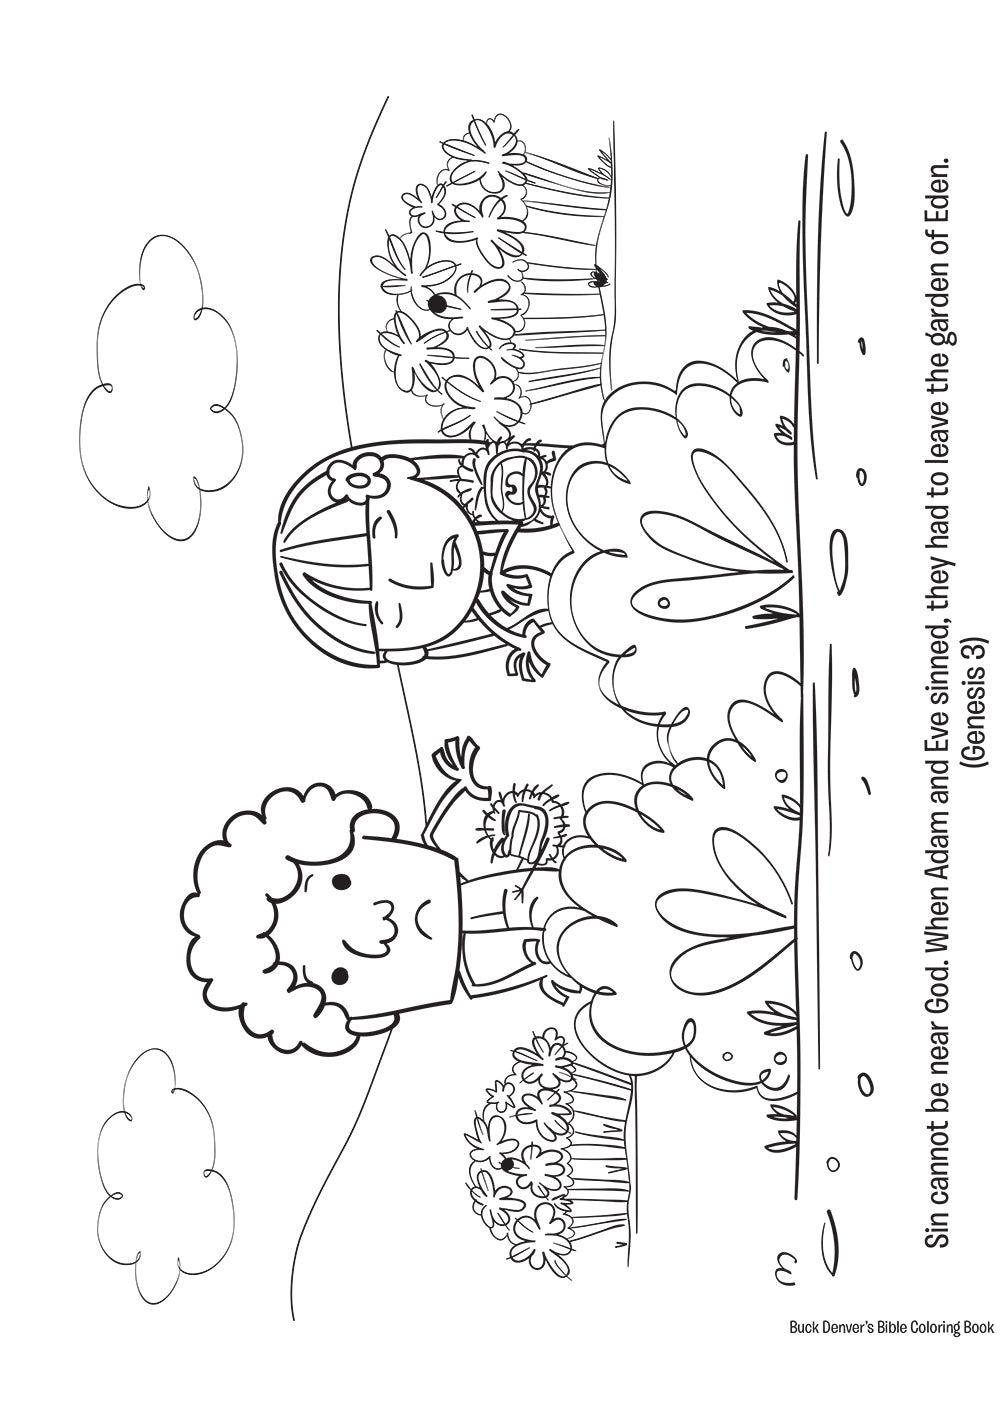 Buck Denver's Bible Coloring Book Old & New Testament